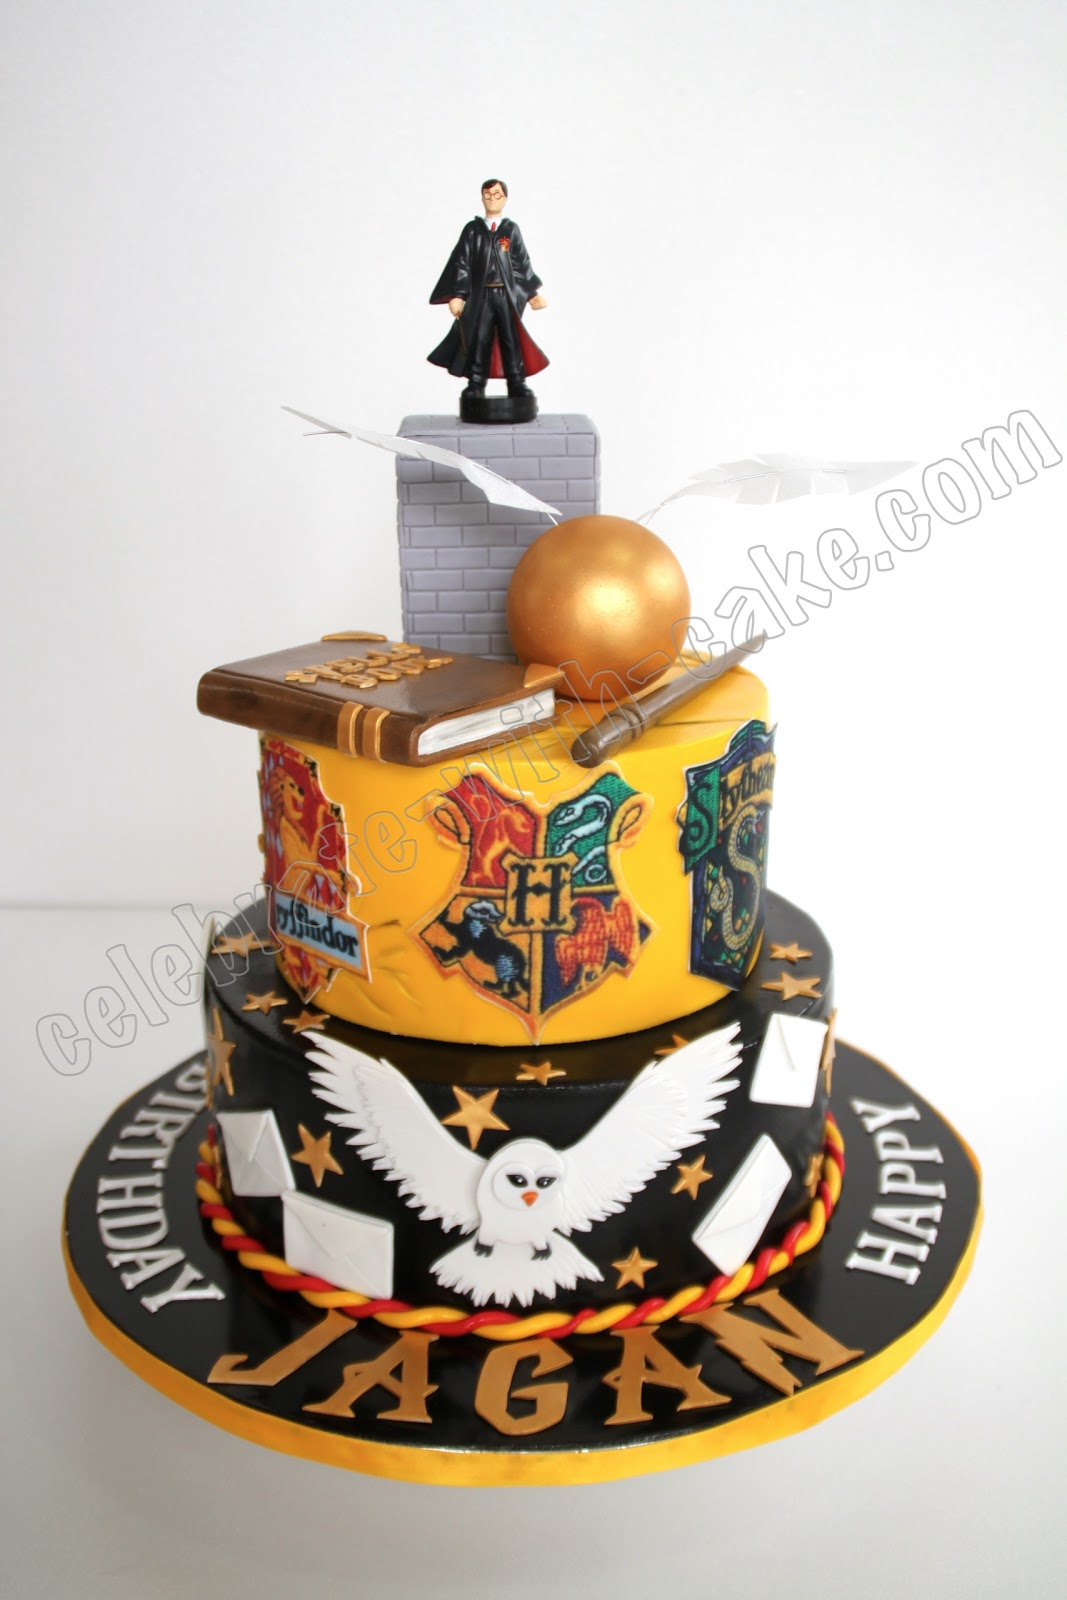 Celebrate with Cake Harry Potter Cake